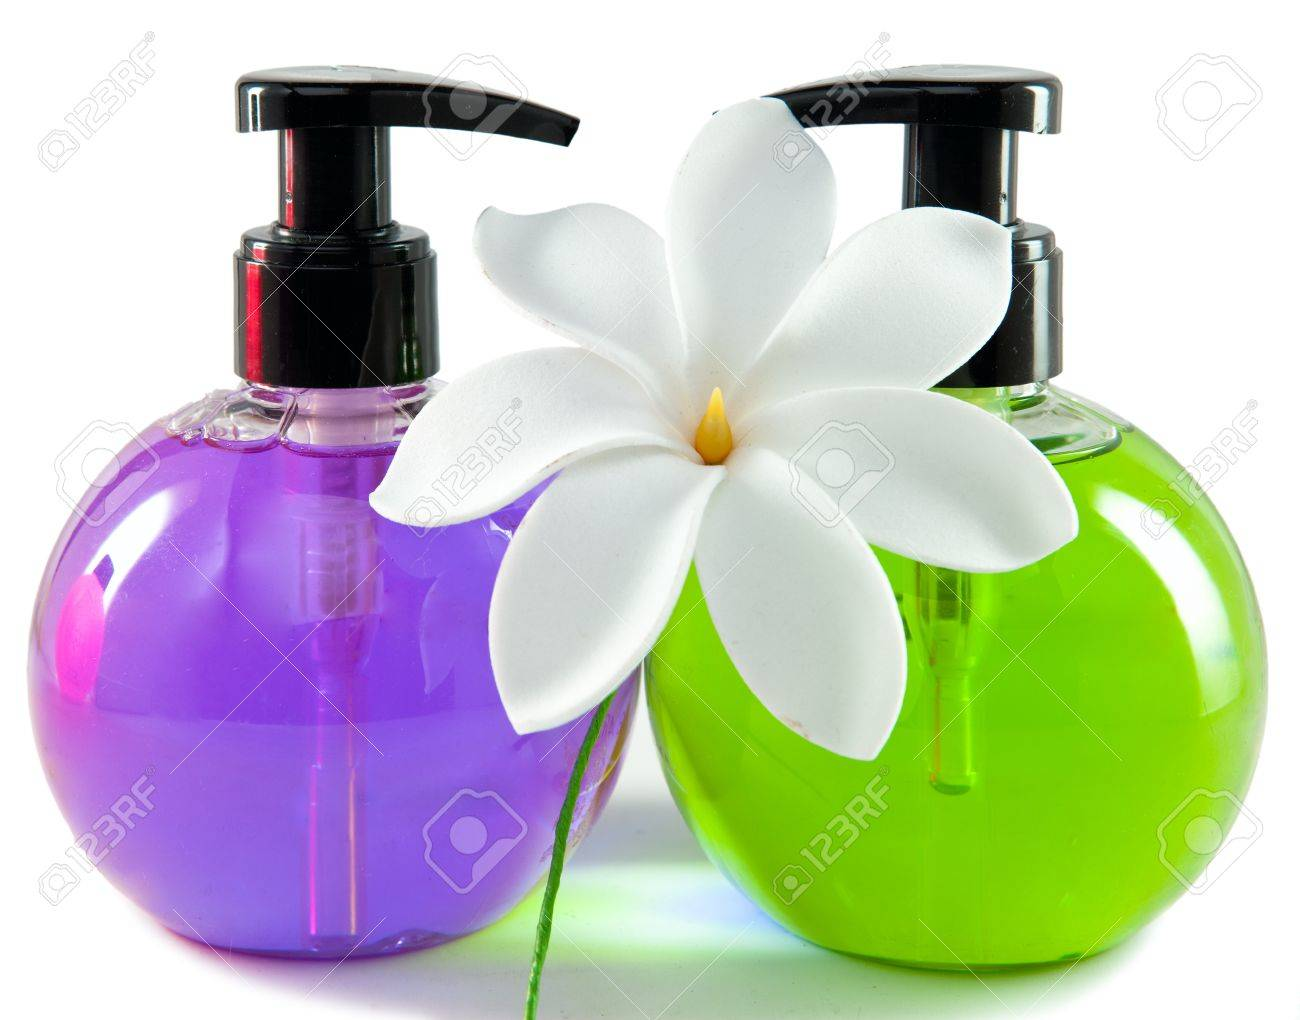 Bright Color Cosmetic Small Bottles With The Dispenser And White